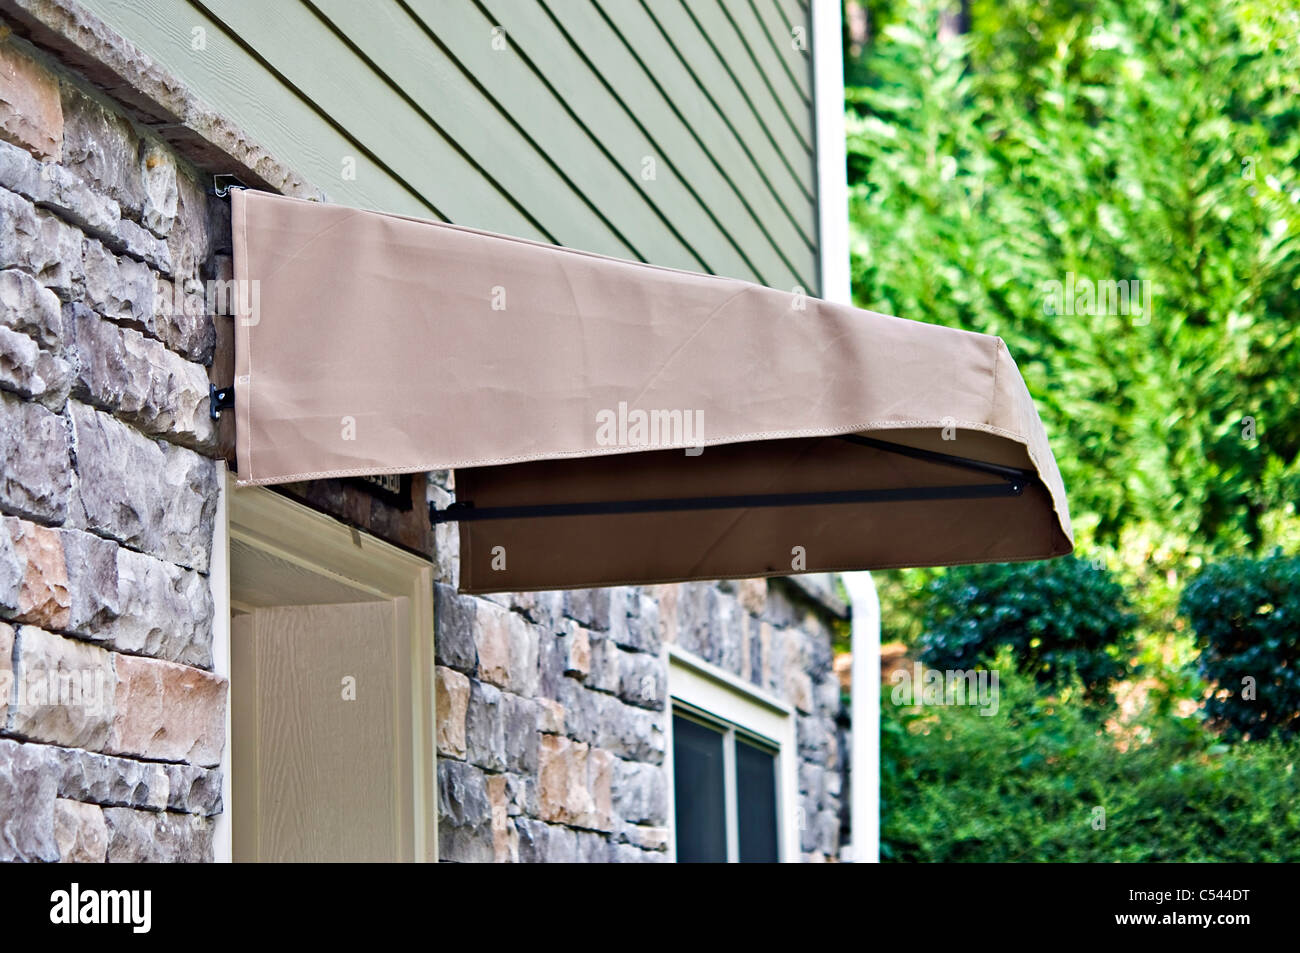 A small canvas awning over an exterior door. - Stock Image